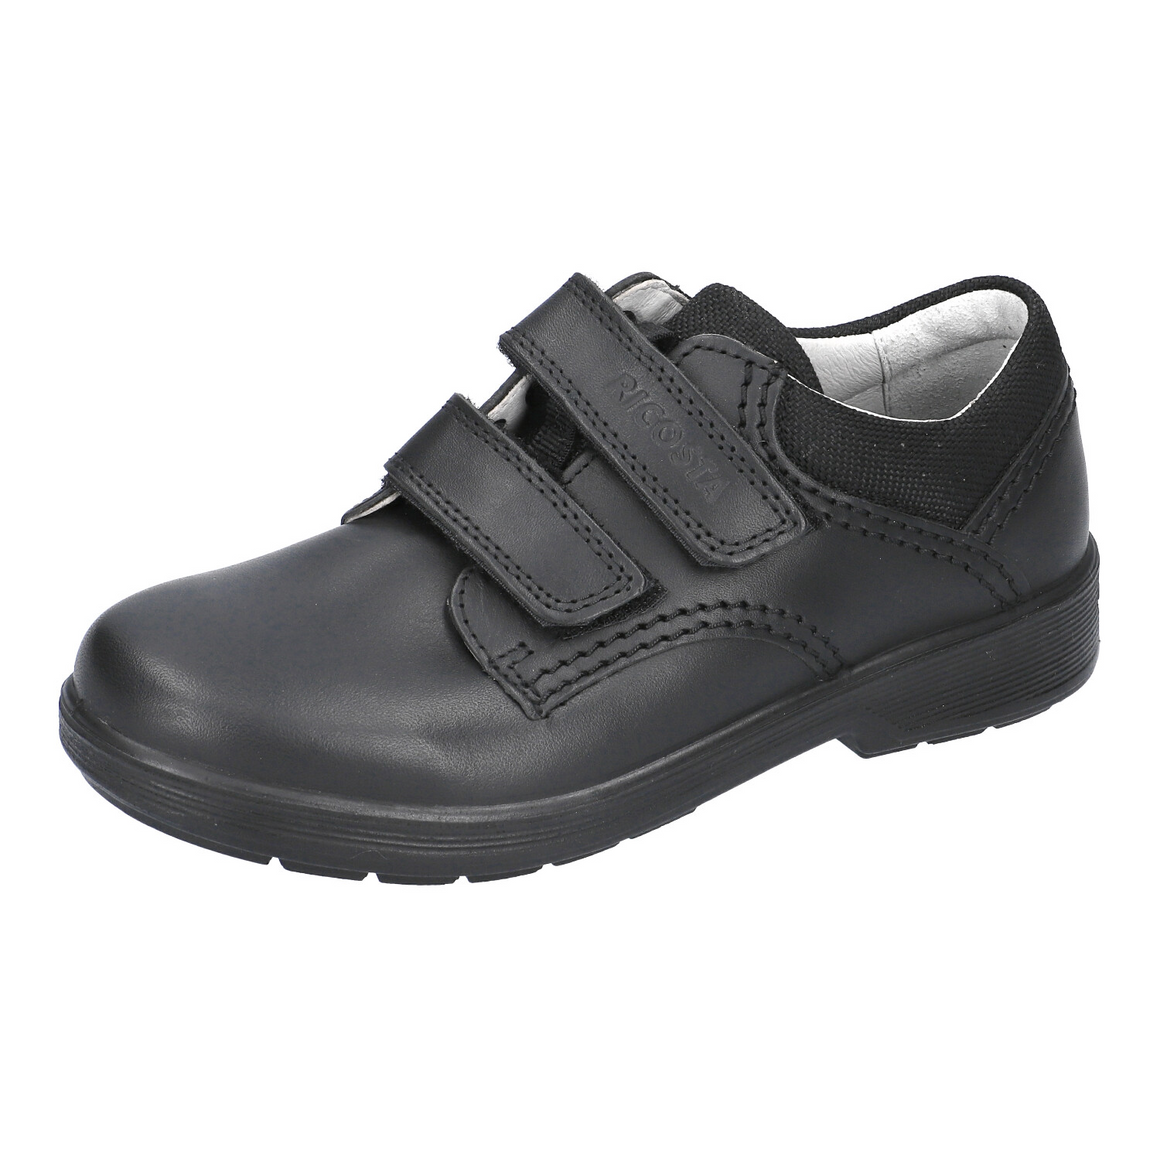 William School Shoes for Boys in Black